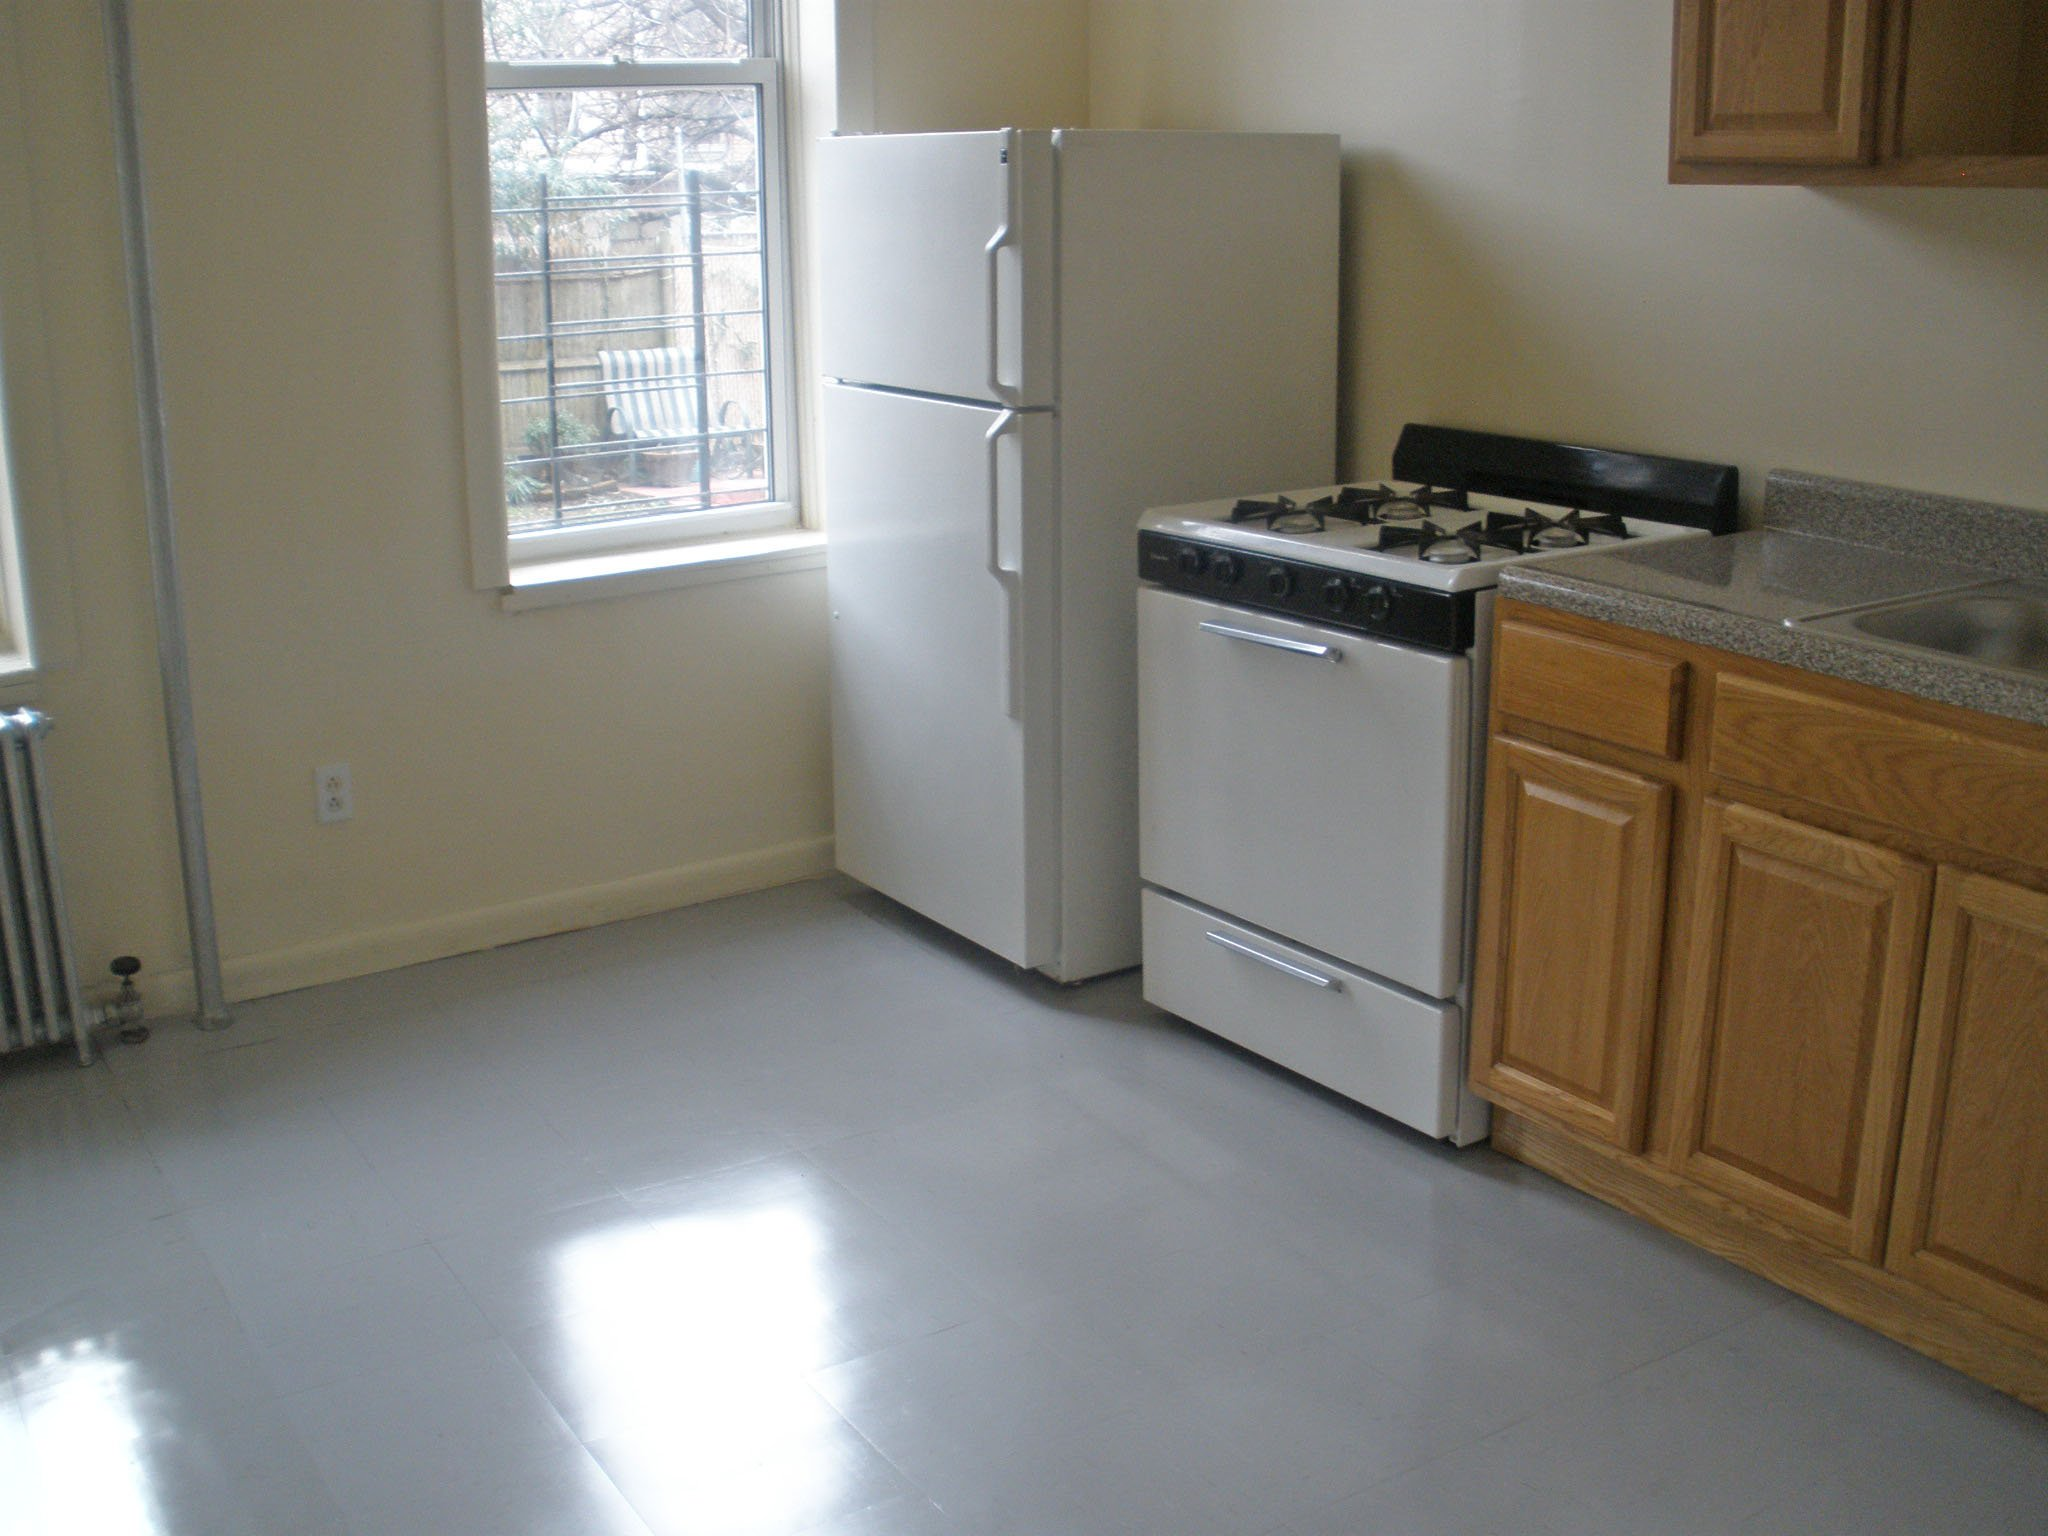 Bedford stuyvesant 2 bedroom apartment for rent brooklyn for 2 bedroom apartments for rent